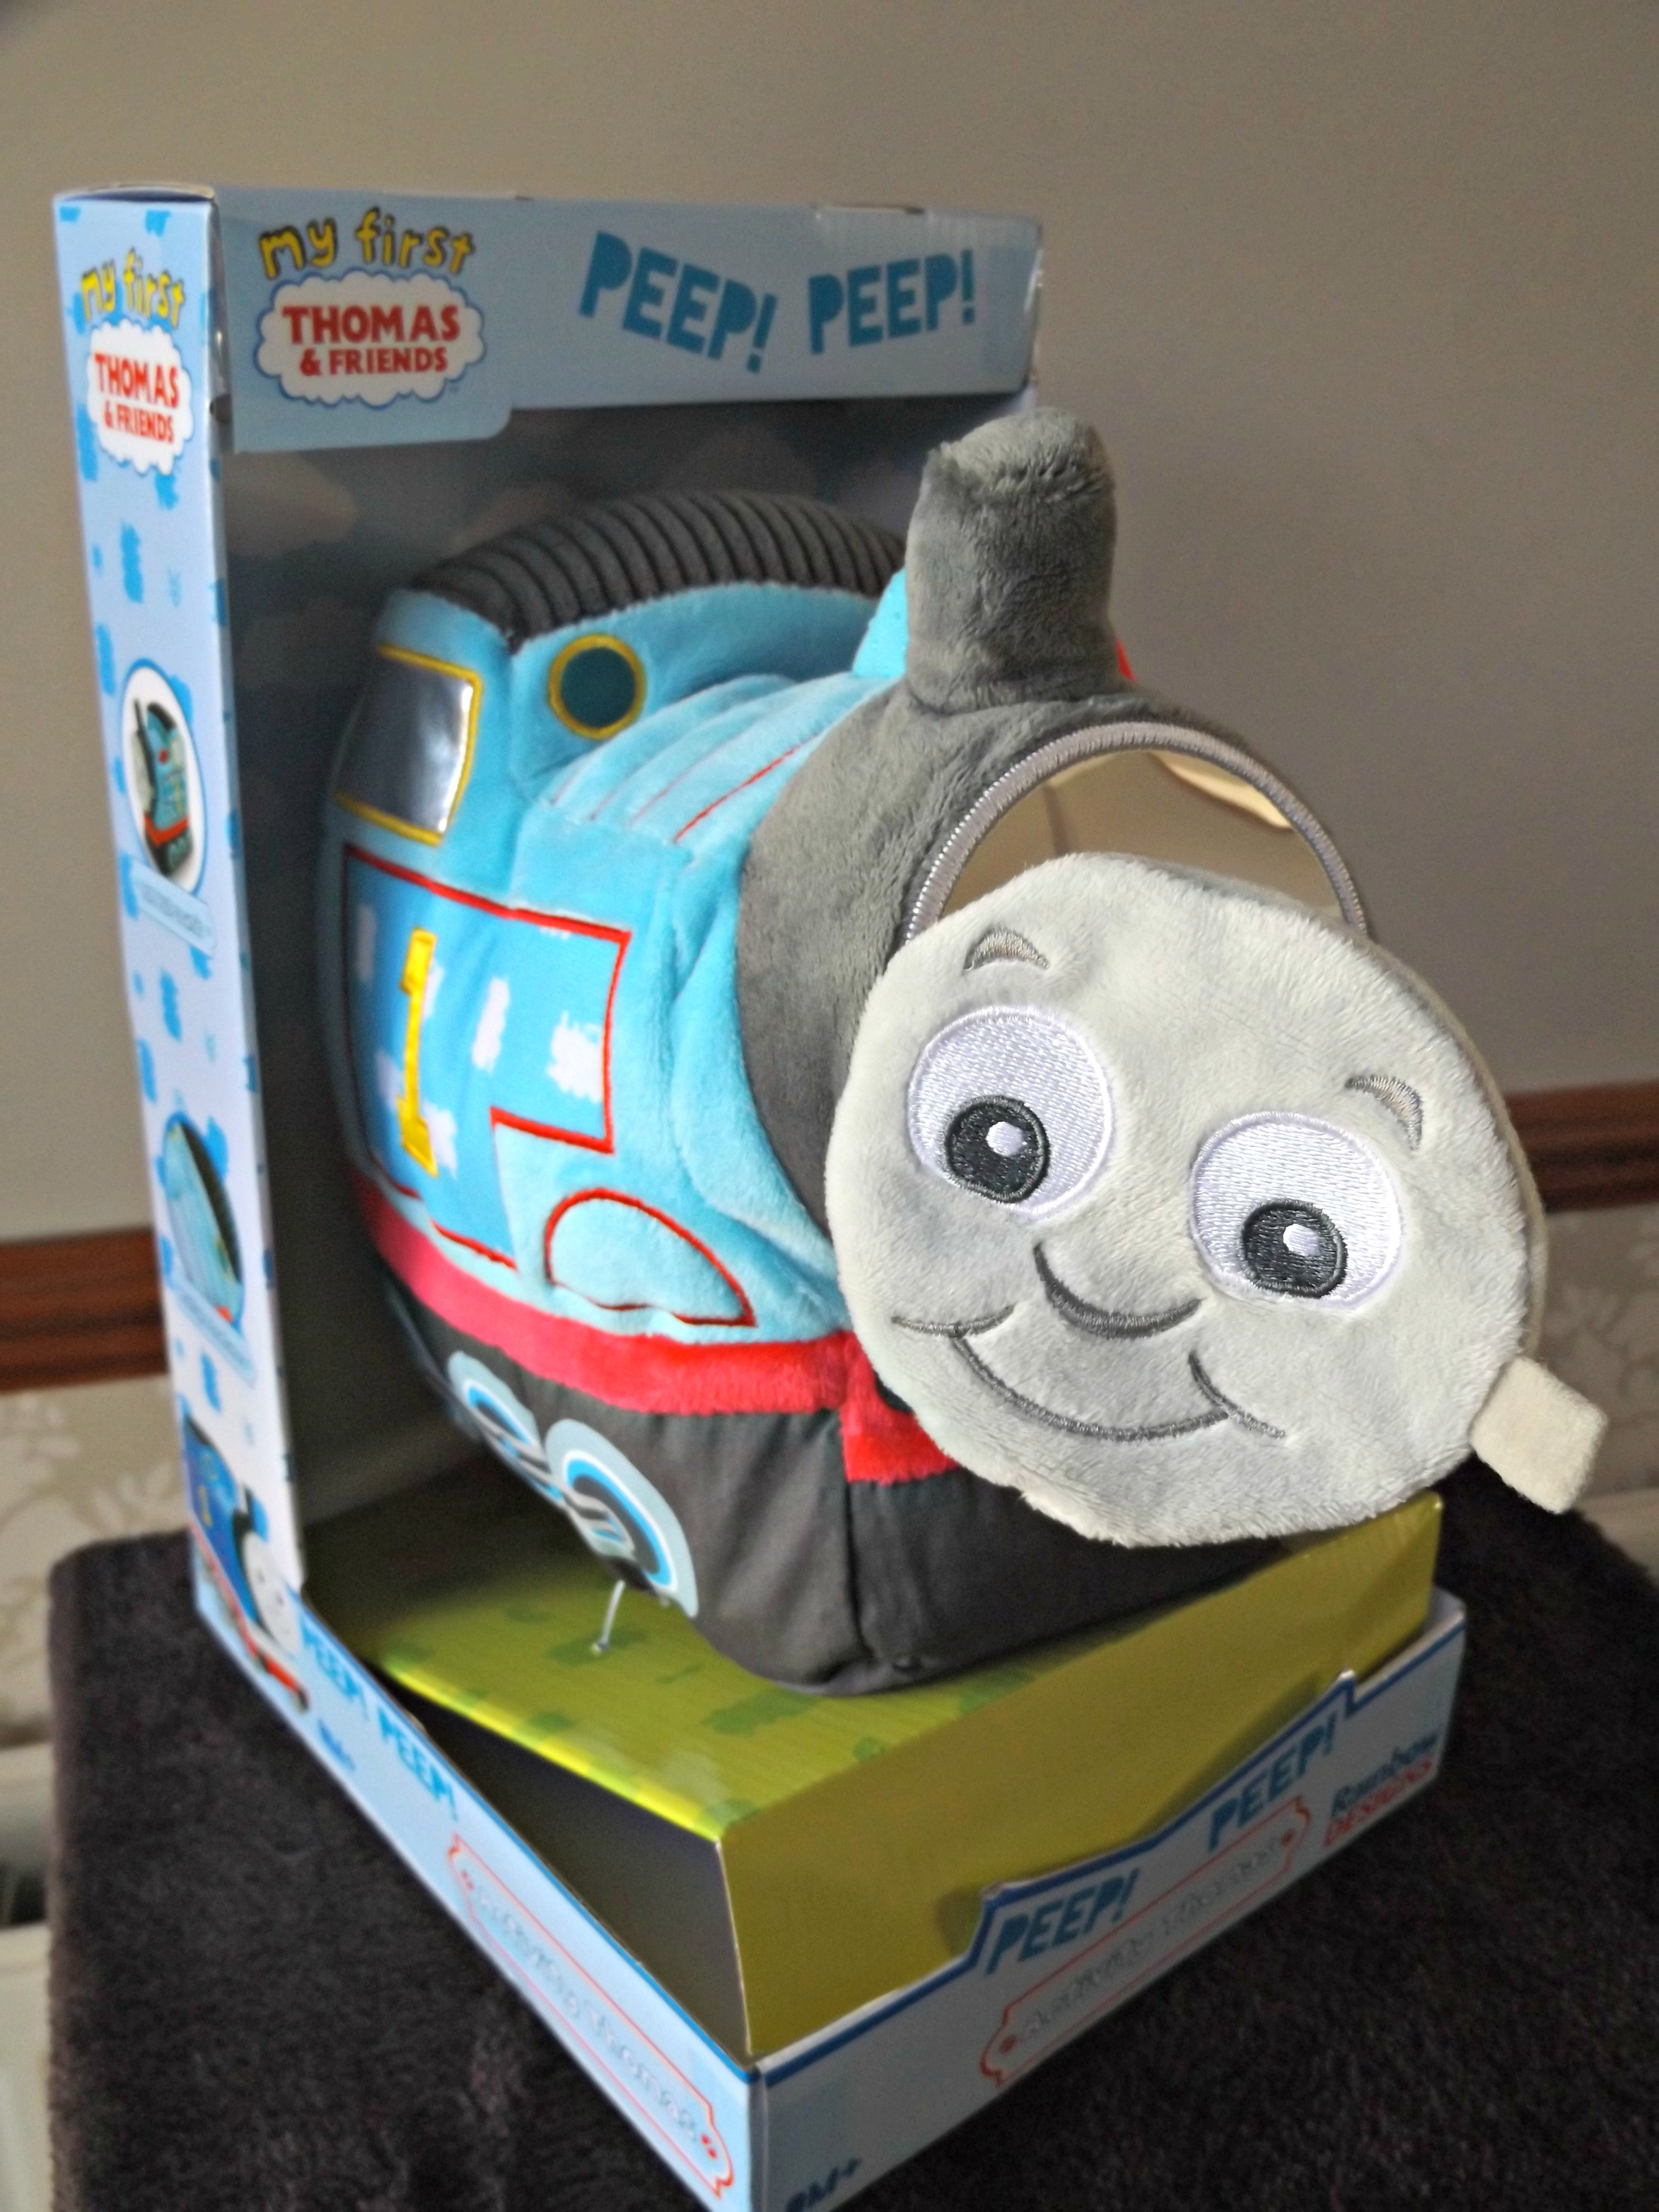 My First Thomas Activity Toy